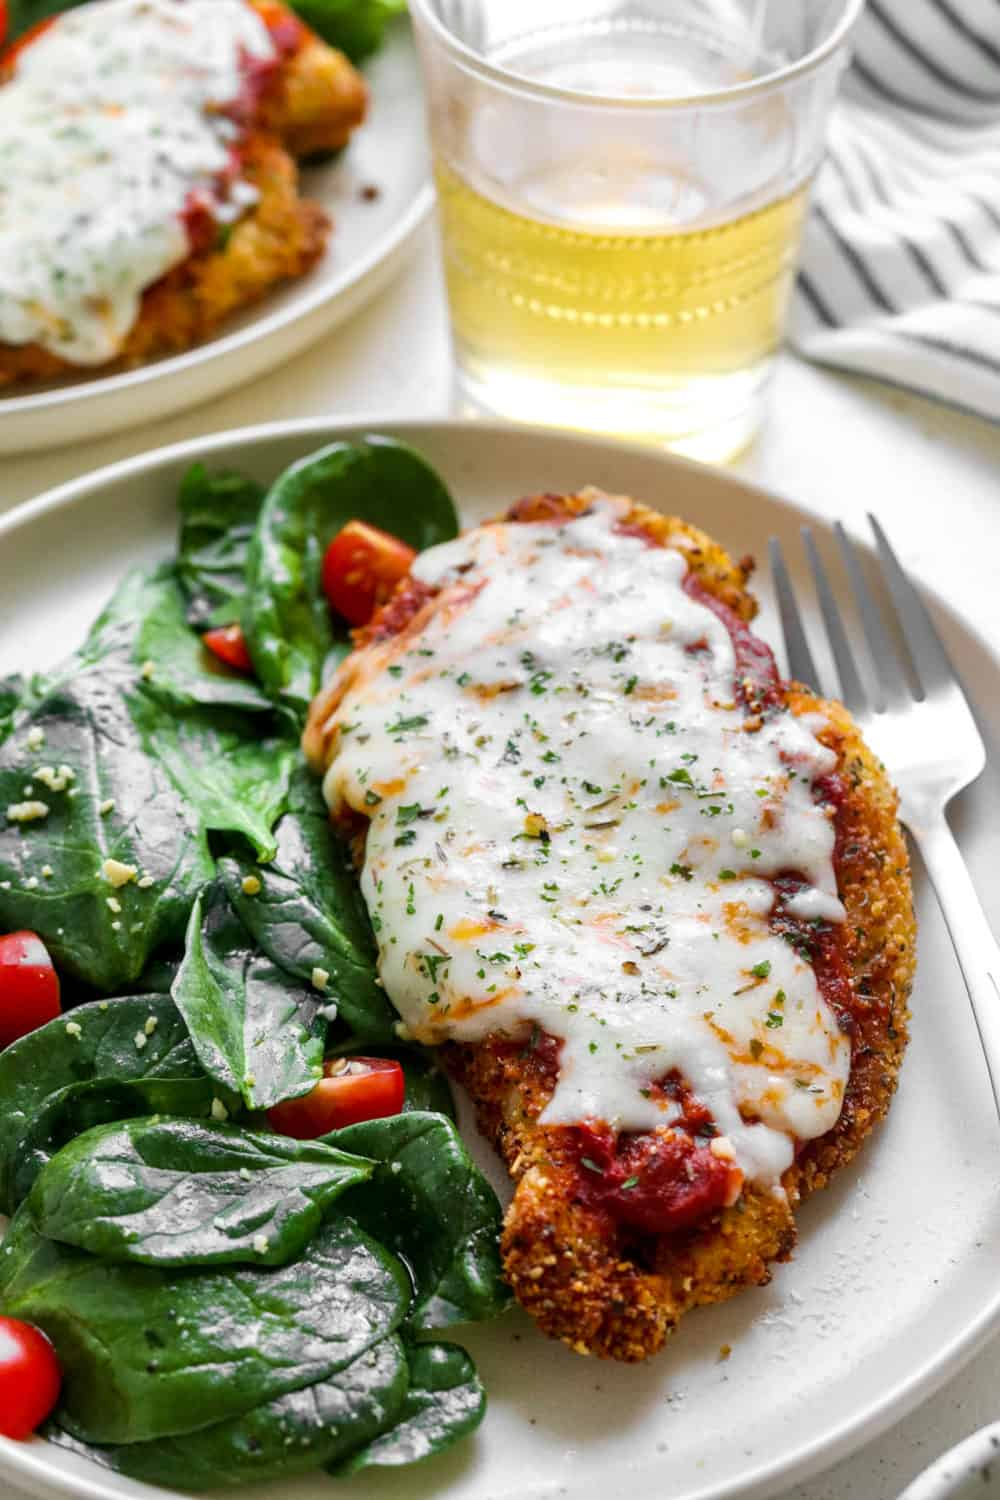 Crispy breaded chicken parmesan on a plate with spinach salad with a form next to the plate and a glass of white wine behind it